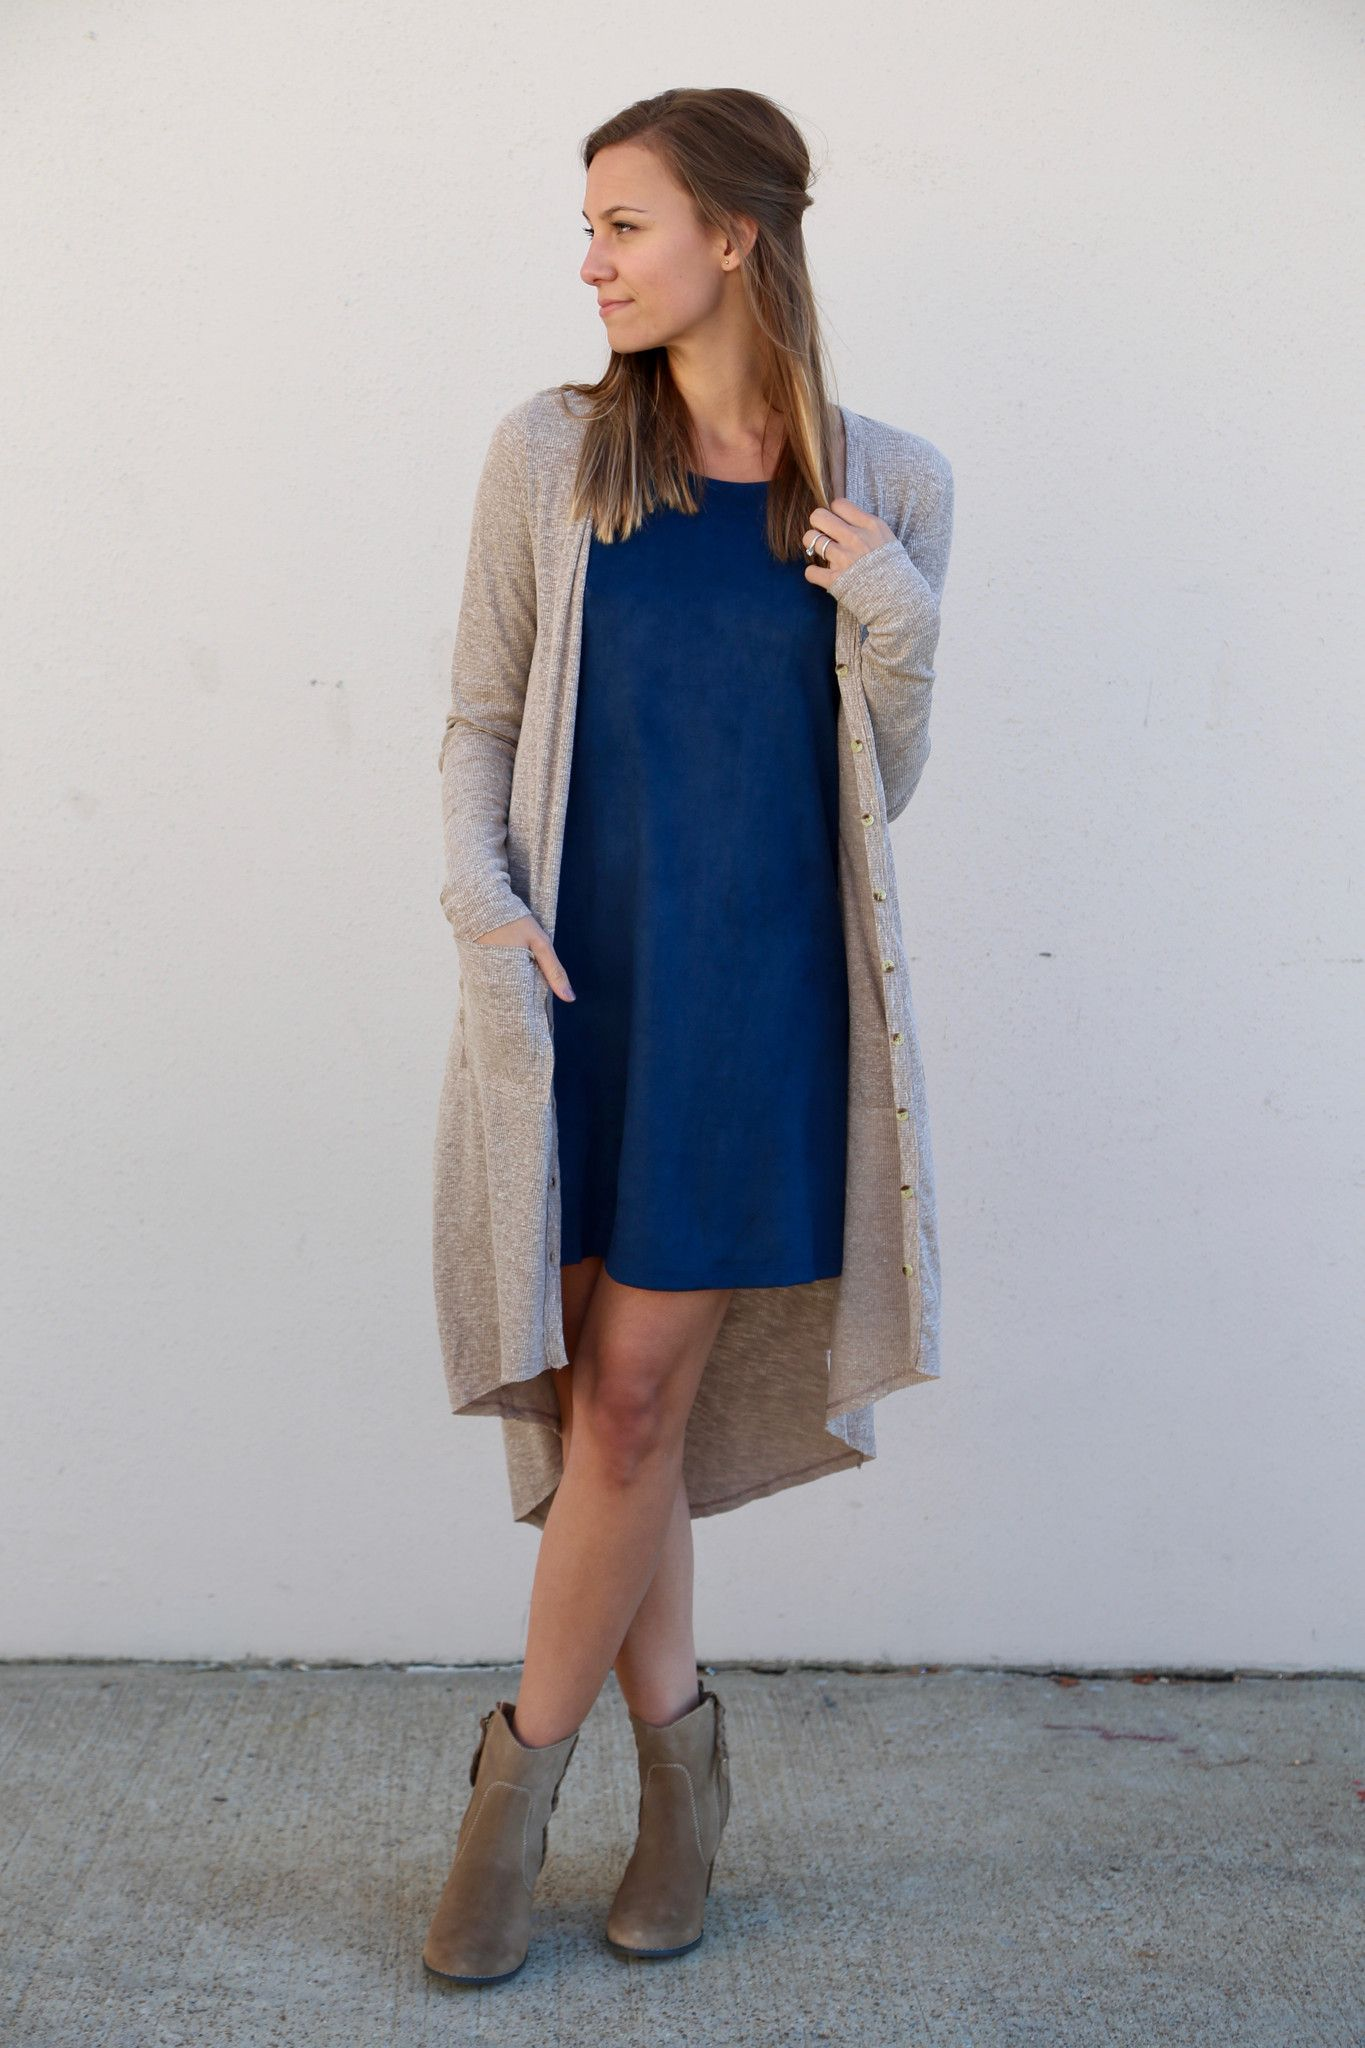 We adore this long cardigan paired with our 'Midnight Blue Suede Dress.' Cotton/polyester blend. Oatmeal in color. Cardigan with button-down front closure. Model in this photo is a 2/3 and is wearing